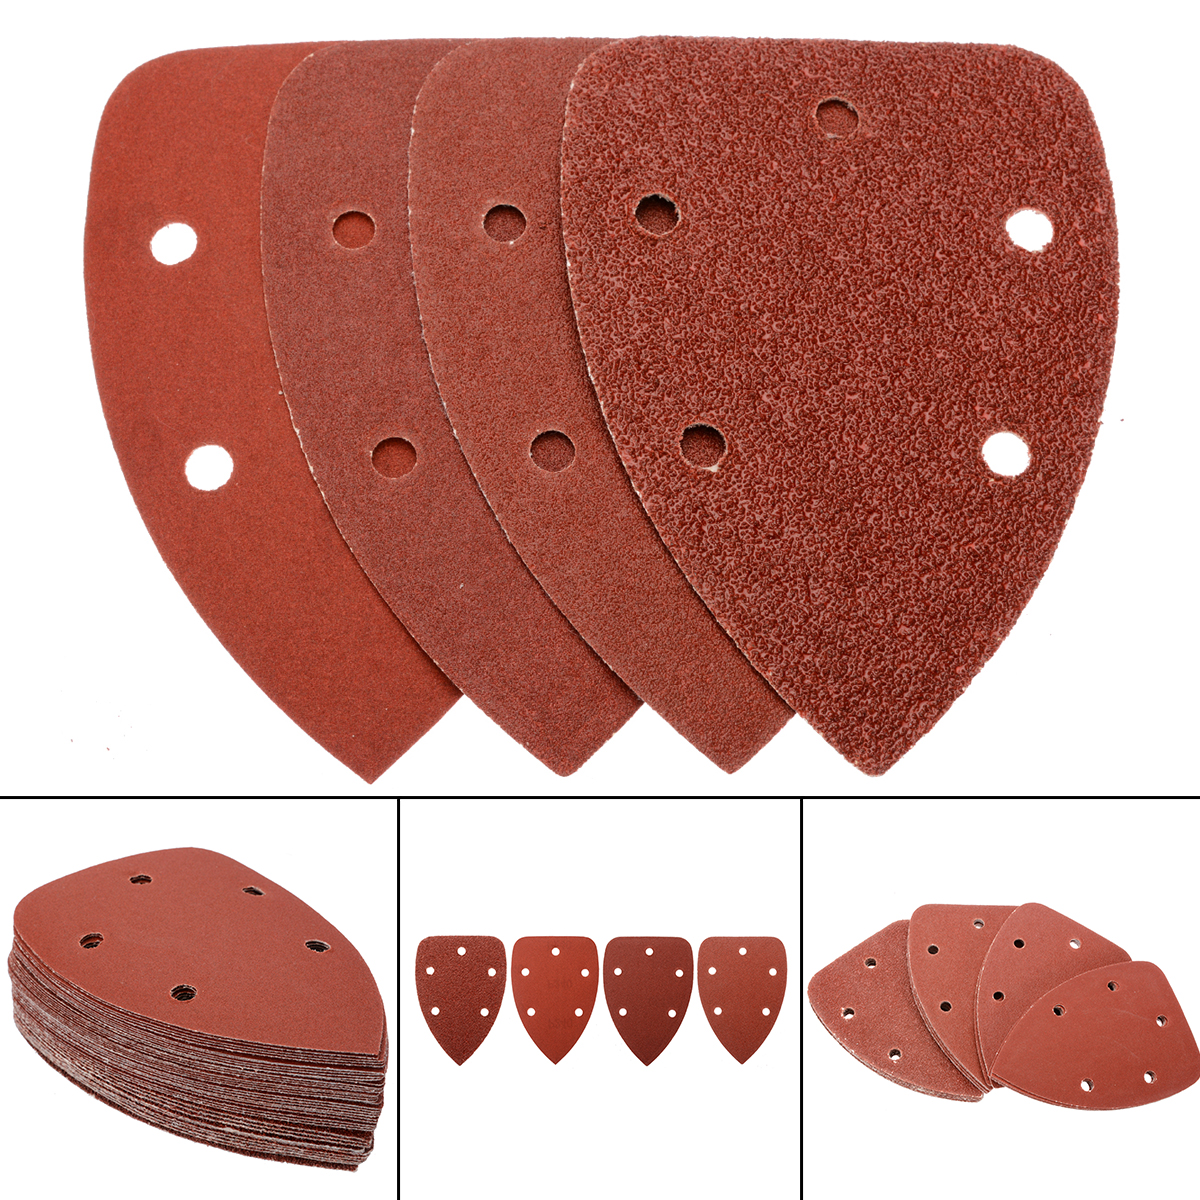 40pcs New Sanding Pads Mouse Sandpaper Disc 40/80/120/240 Grit 140x100mm For Polishing Tools40pcs New Sanding Pads Mouse Sandpaper Disc 40/80/120/240 Grit 140x100mm For Polishing Tools